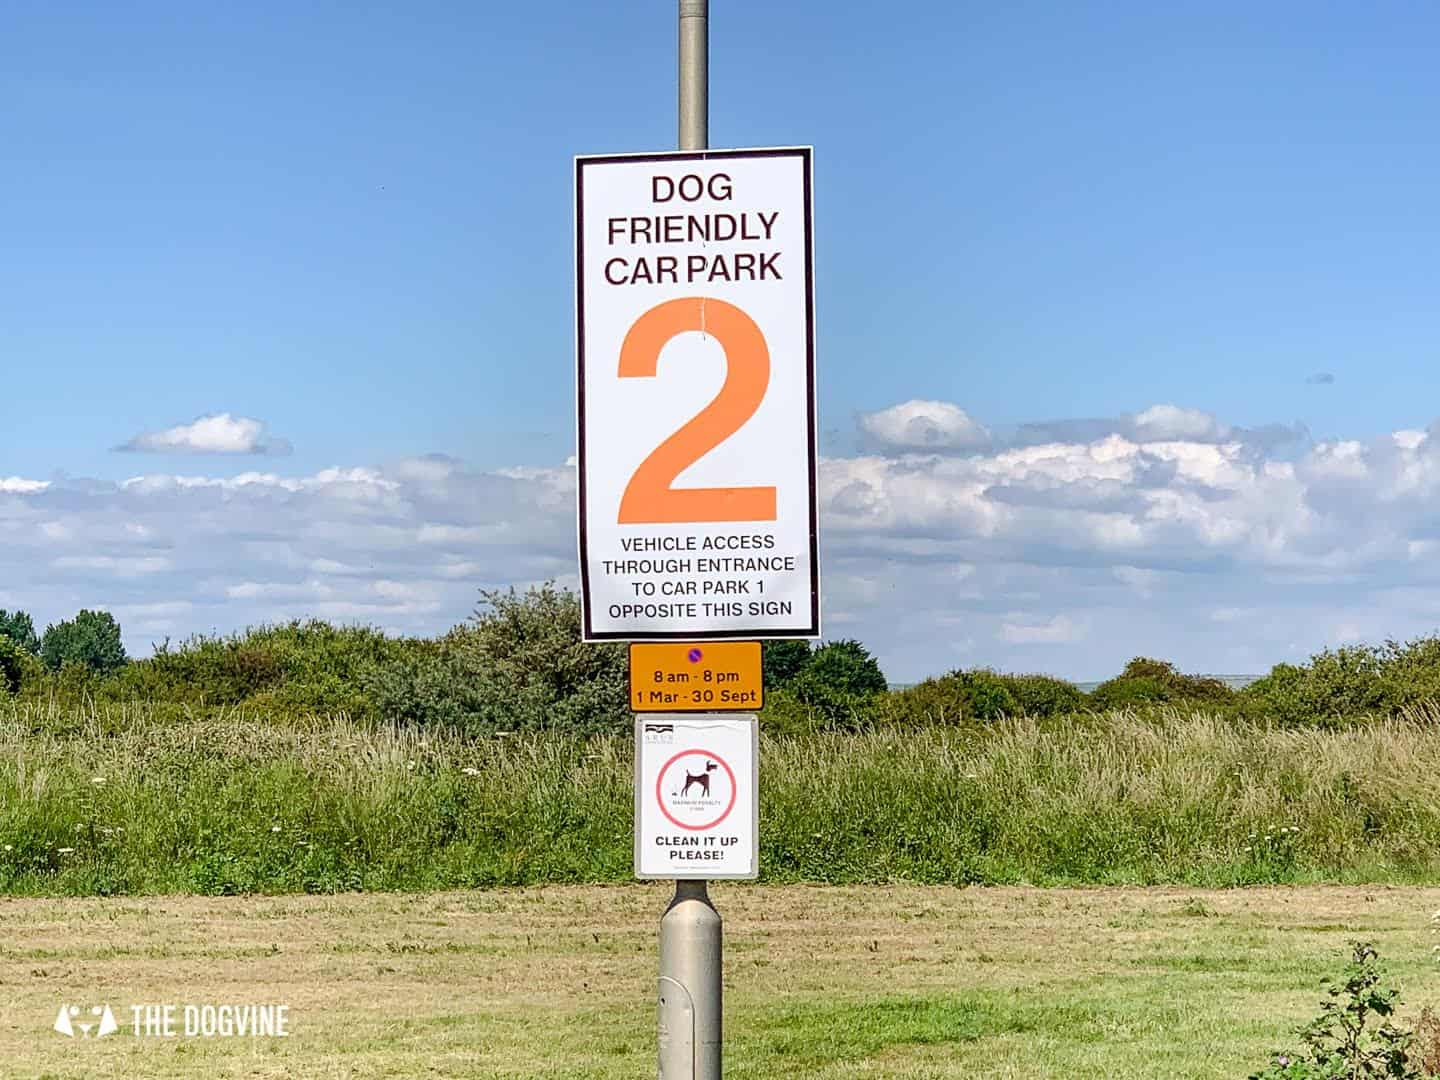 The Best Dog-Friendly Beaches in West Sussex - Climping Beach Dog-Friendly Car Park